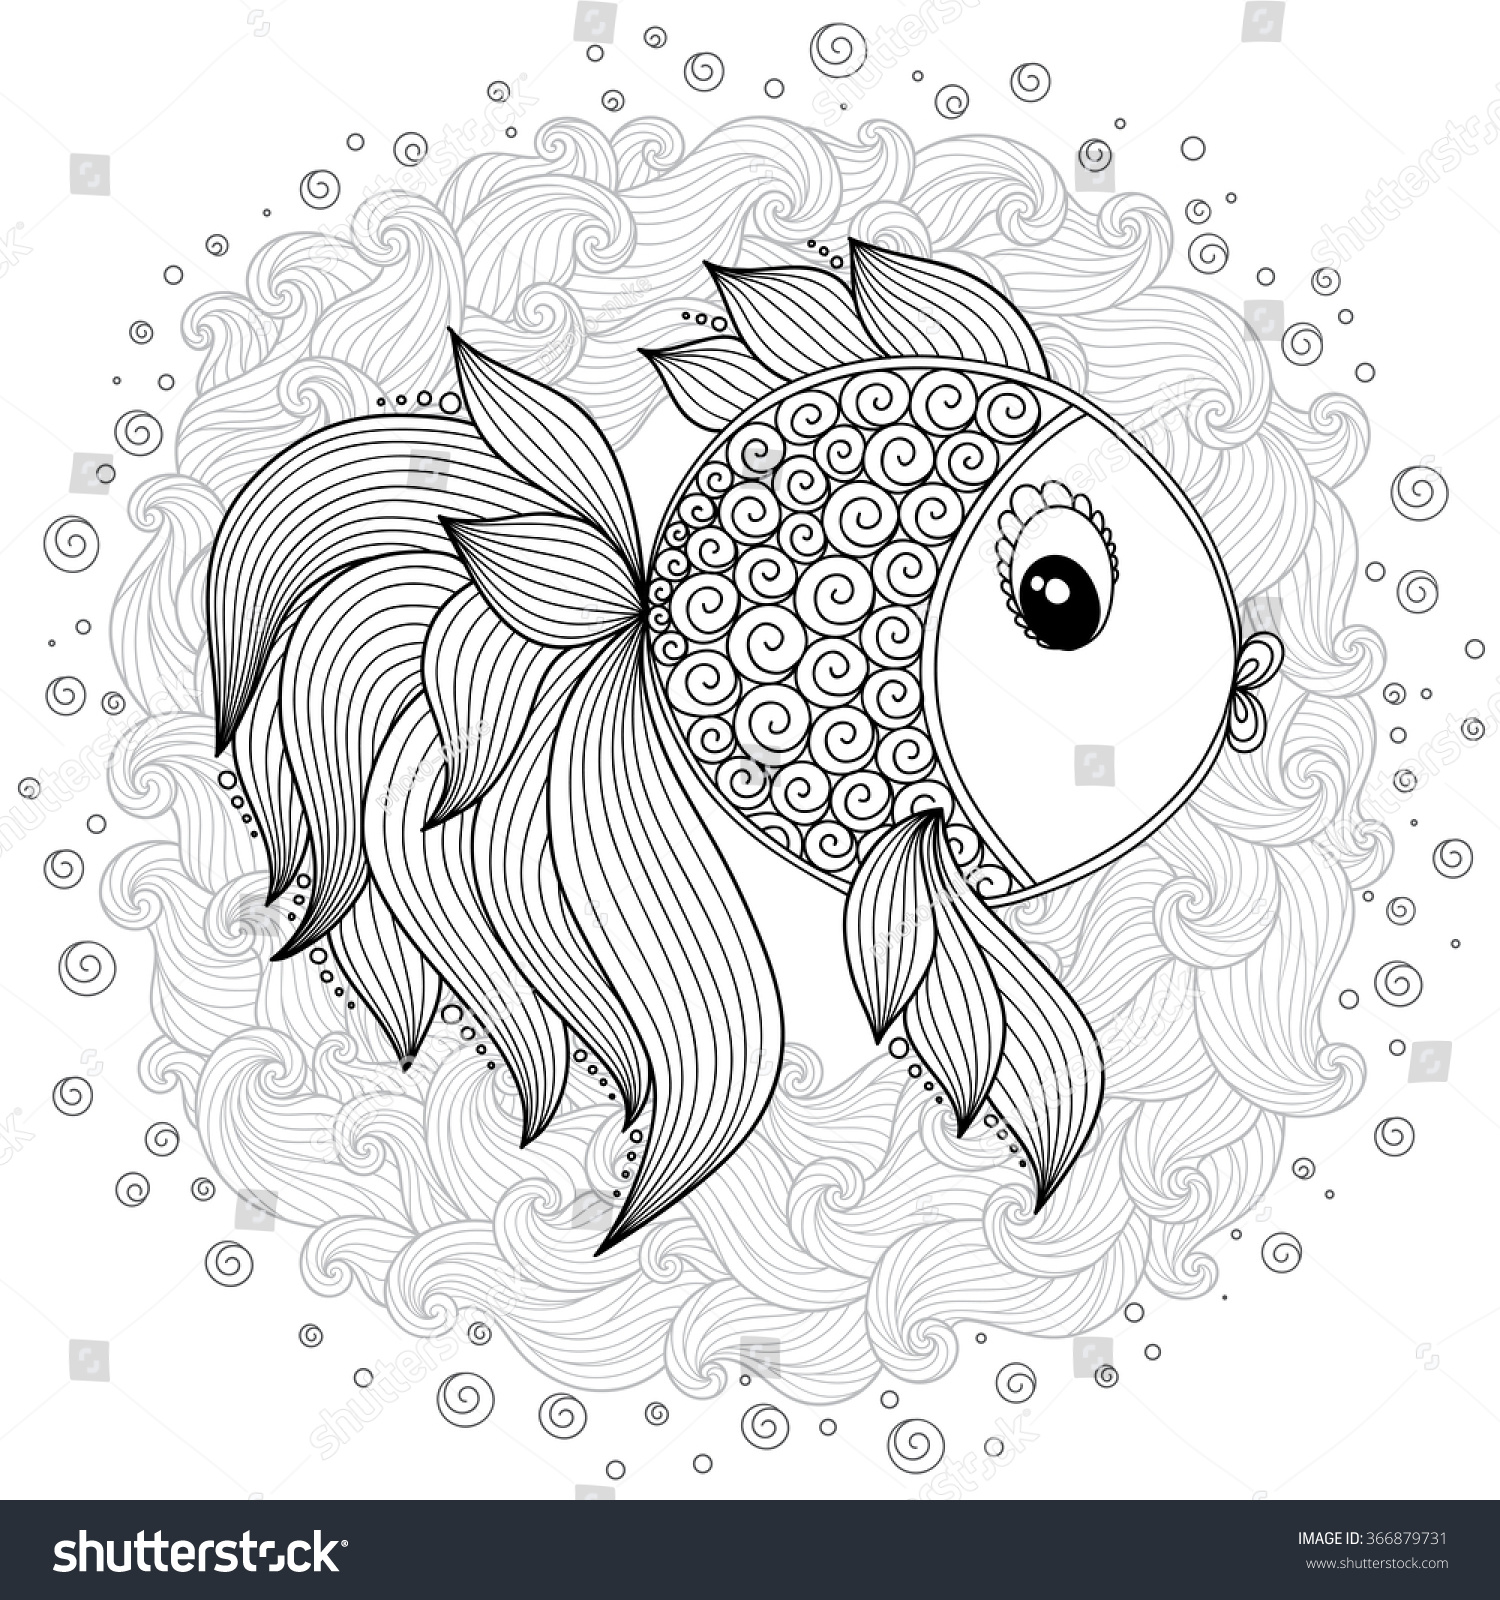 Gallery For gt Coloring Pages Of Cute Patterns